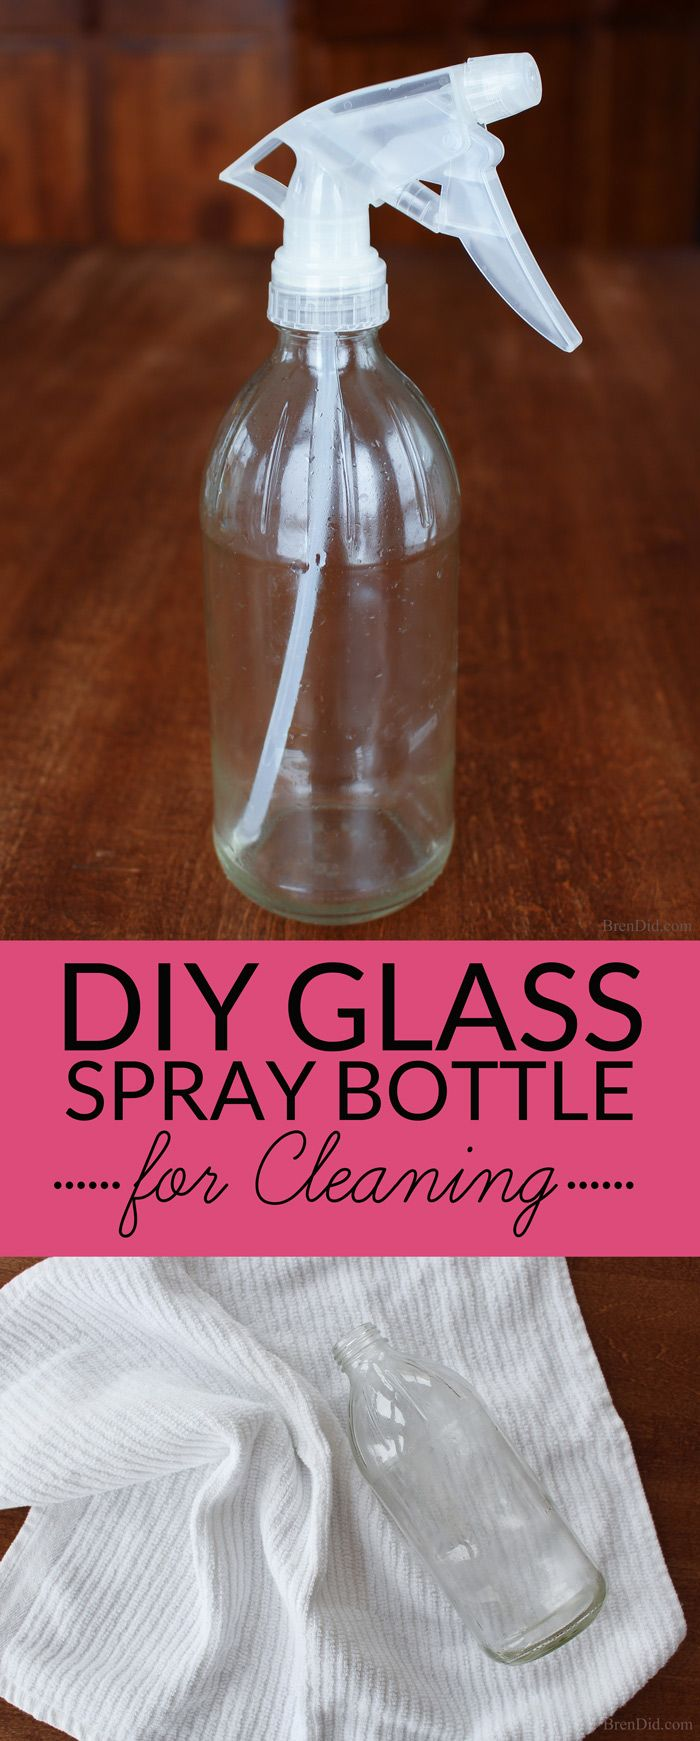 Get spray bottles for all your natural DIY cleaners for FREE with this easy upcycled project. Glass spray bottles do not react with essential oils and other green cleaning ingredients and are recommended by green cleaning experts.